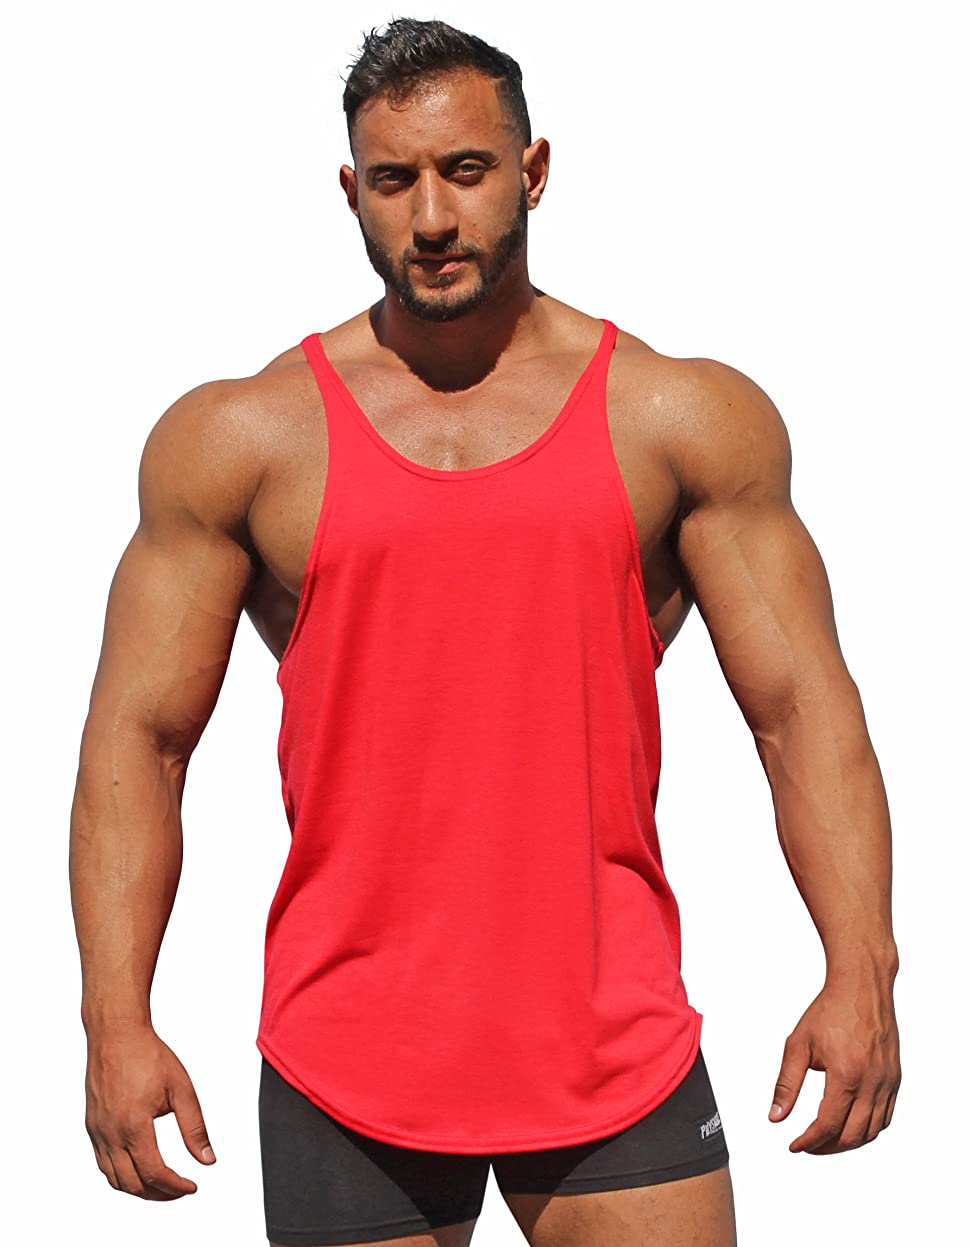 trueiuptaf.gq offers 16, stringer tank top wholesale products. About 57% of these are men's undershirts, 9% are fitness & yoga wear, and 1% are training & jogging wear. A wide variety of stringer tank top wholesale options are available to you, such as breathable, quick dry, and anti-shrink.